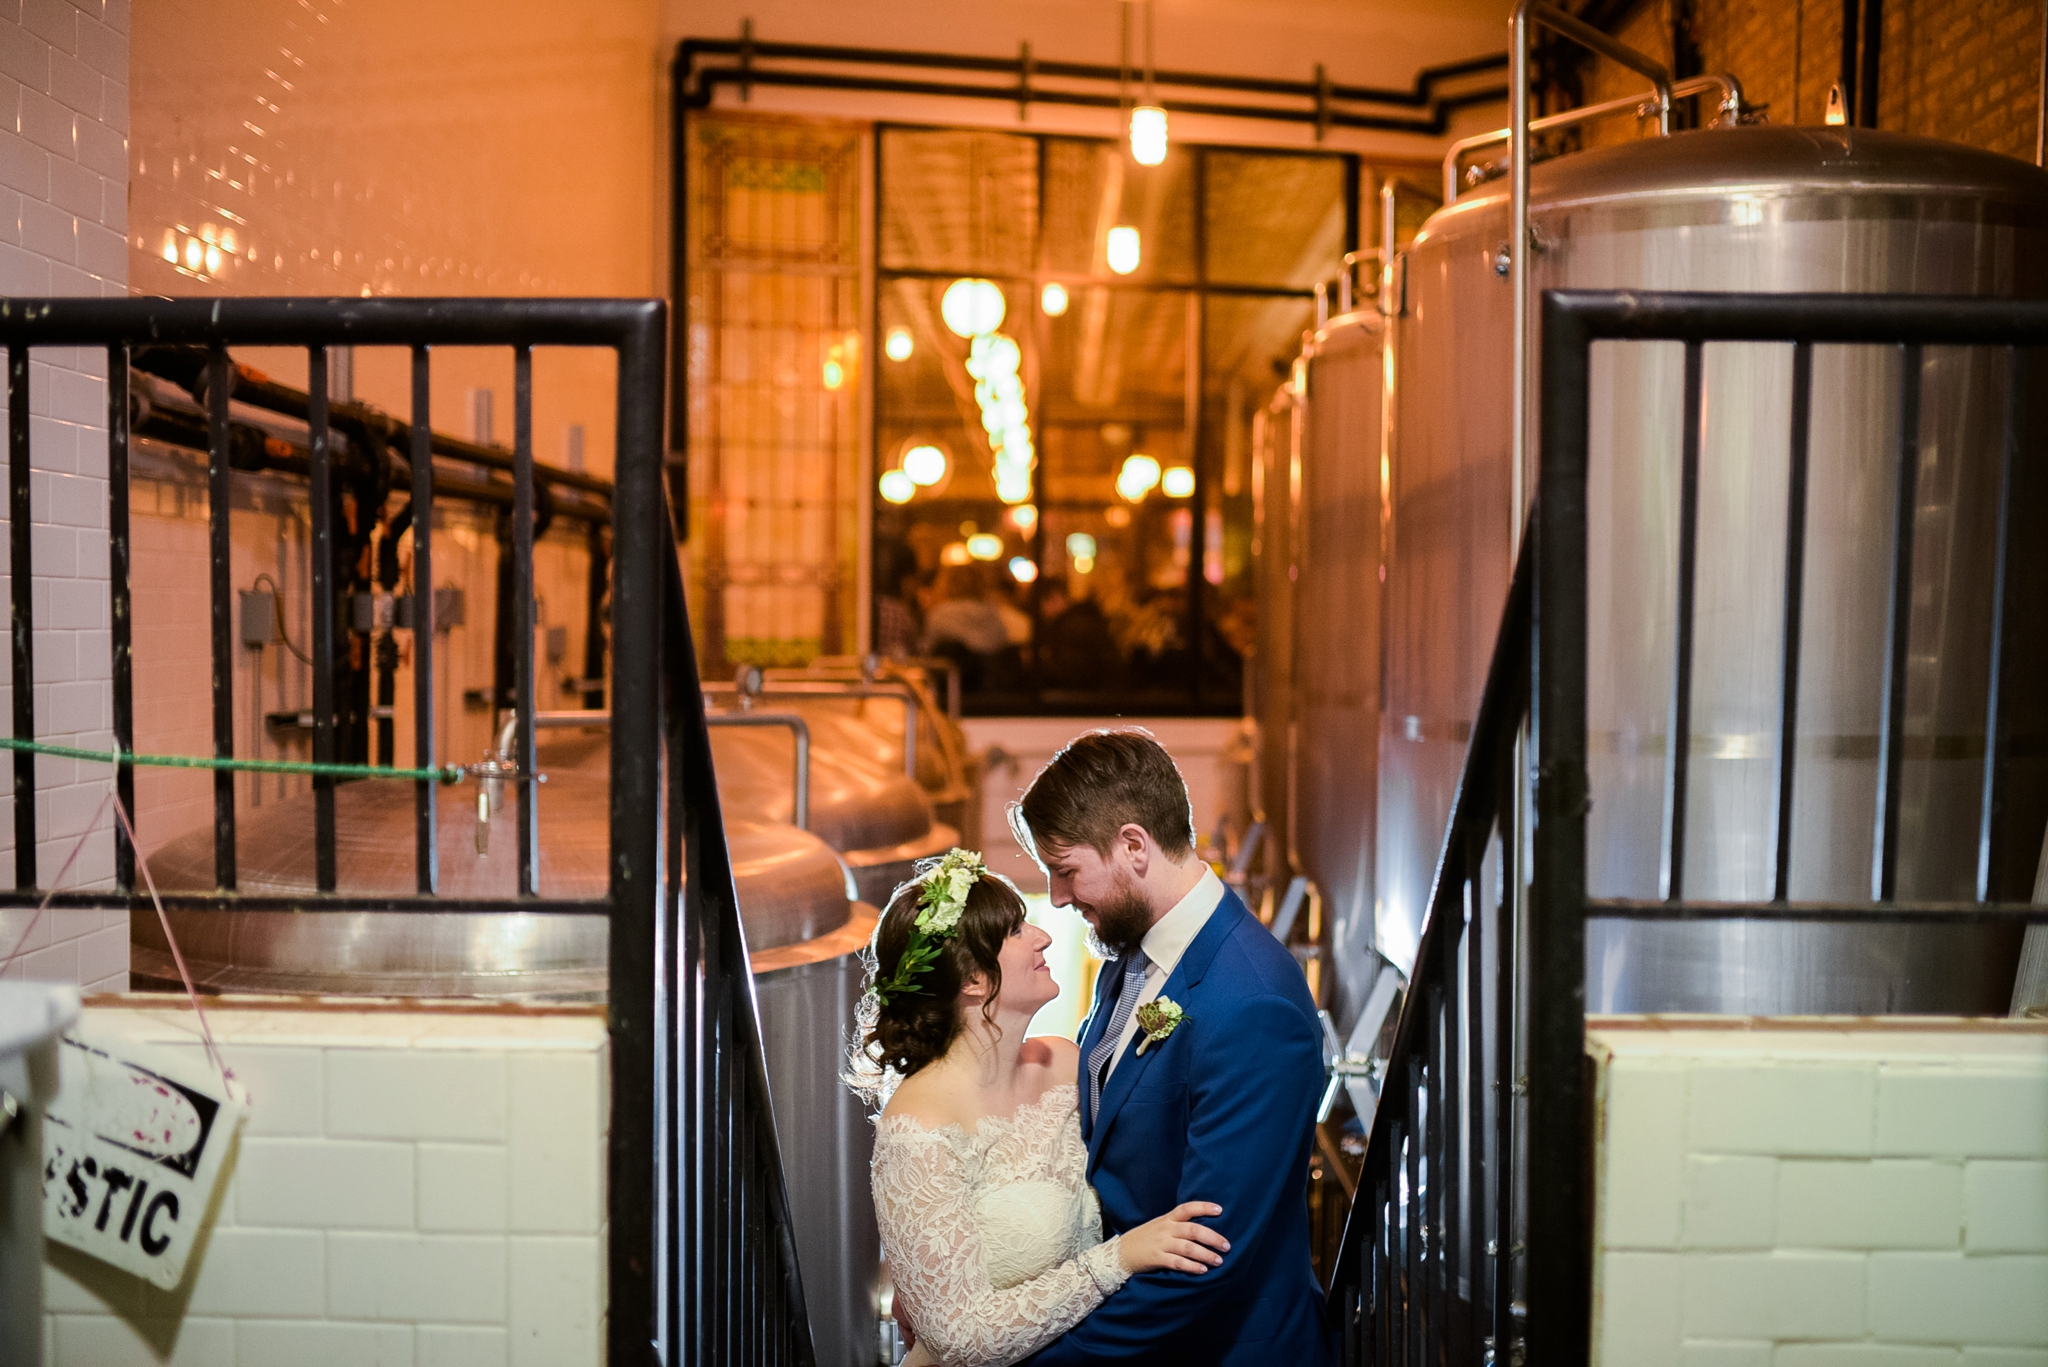 Revolution-Brewing-Wedding-Photographer-109.JPG